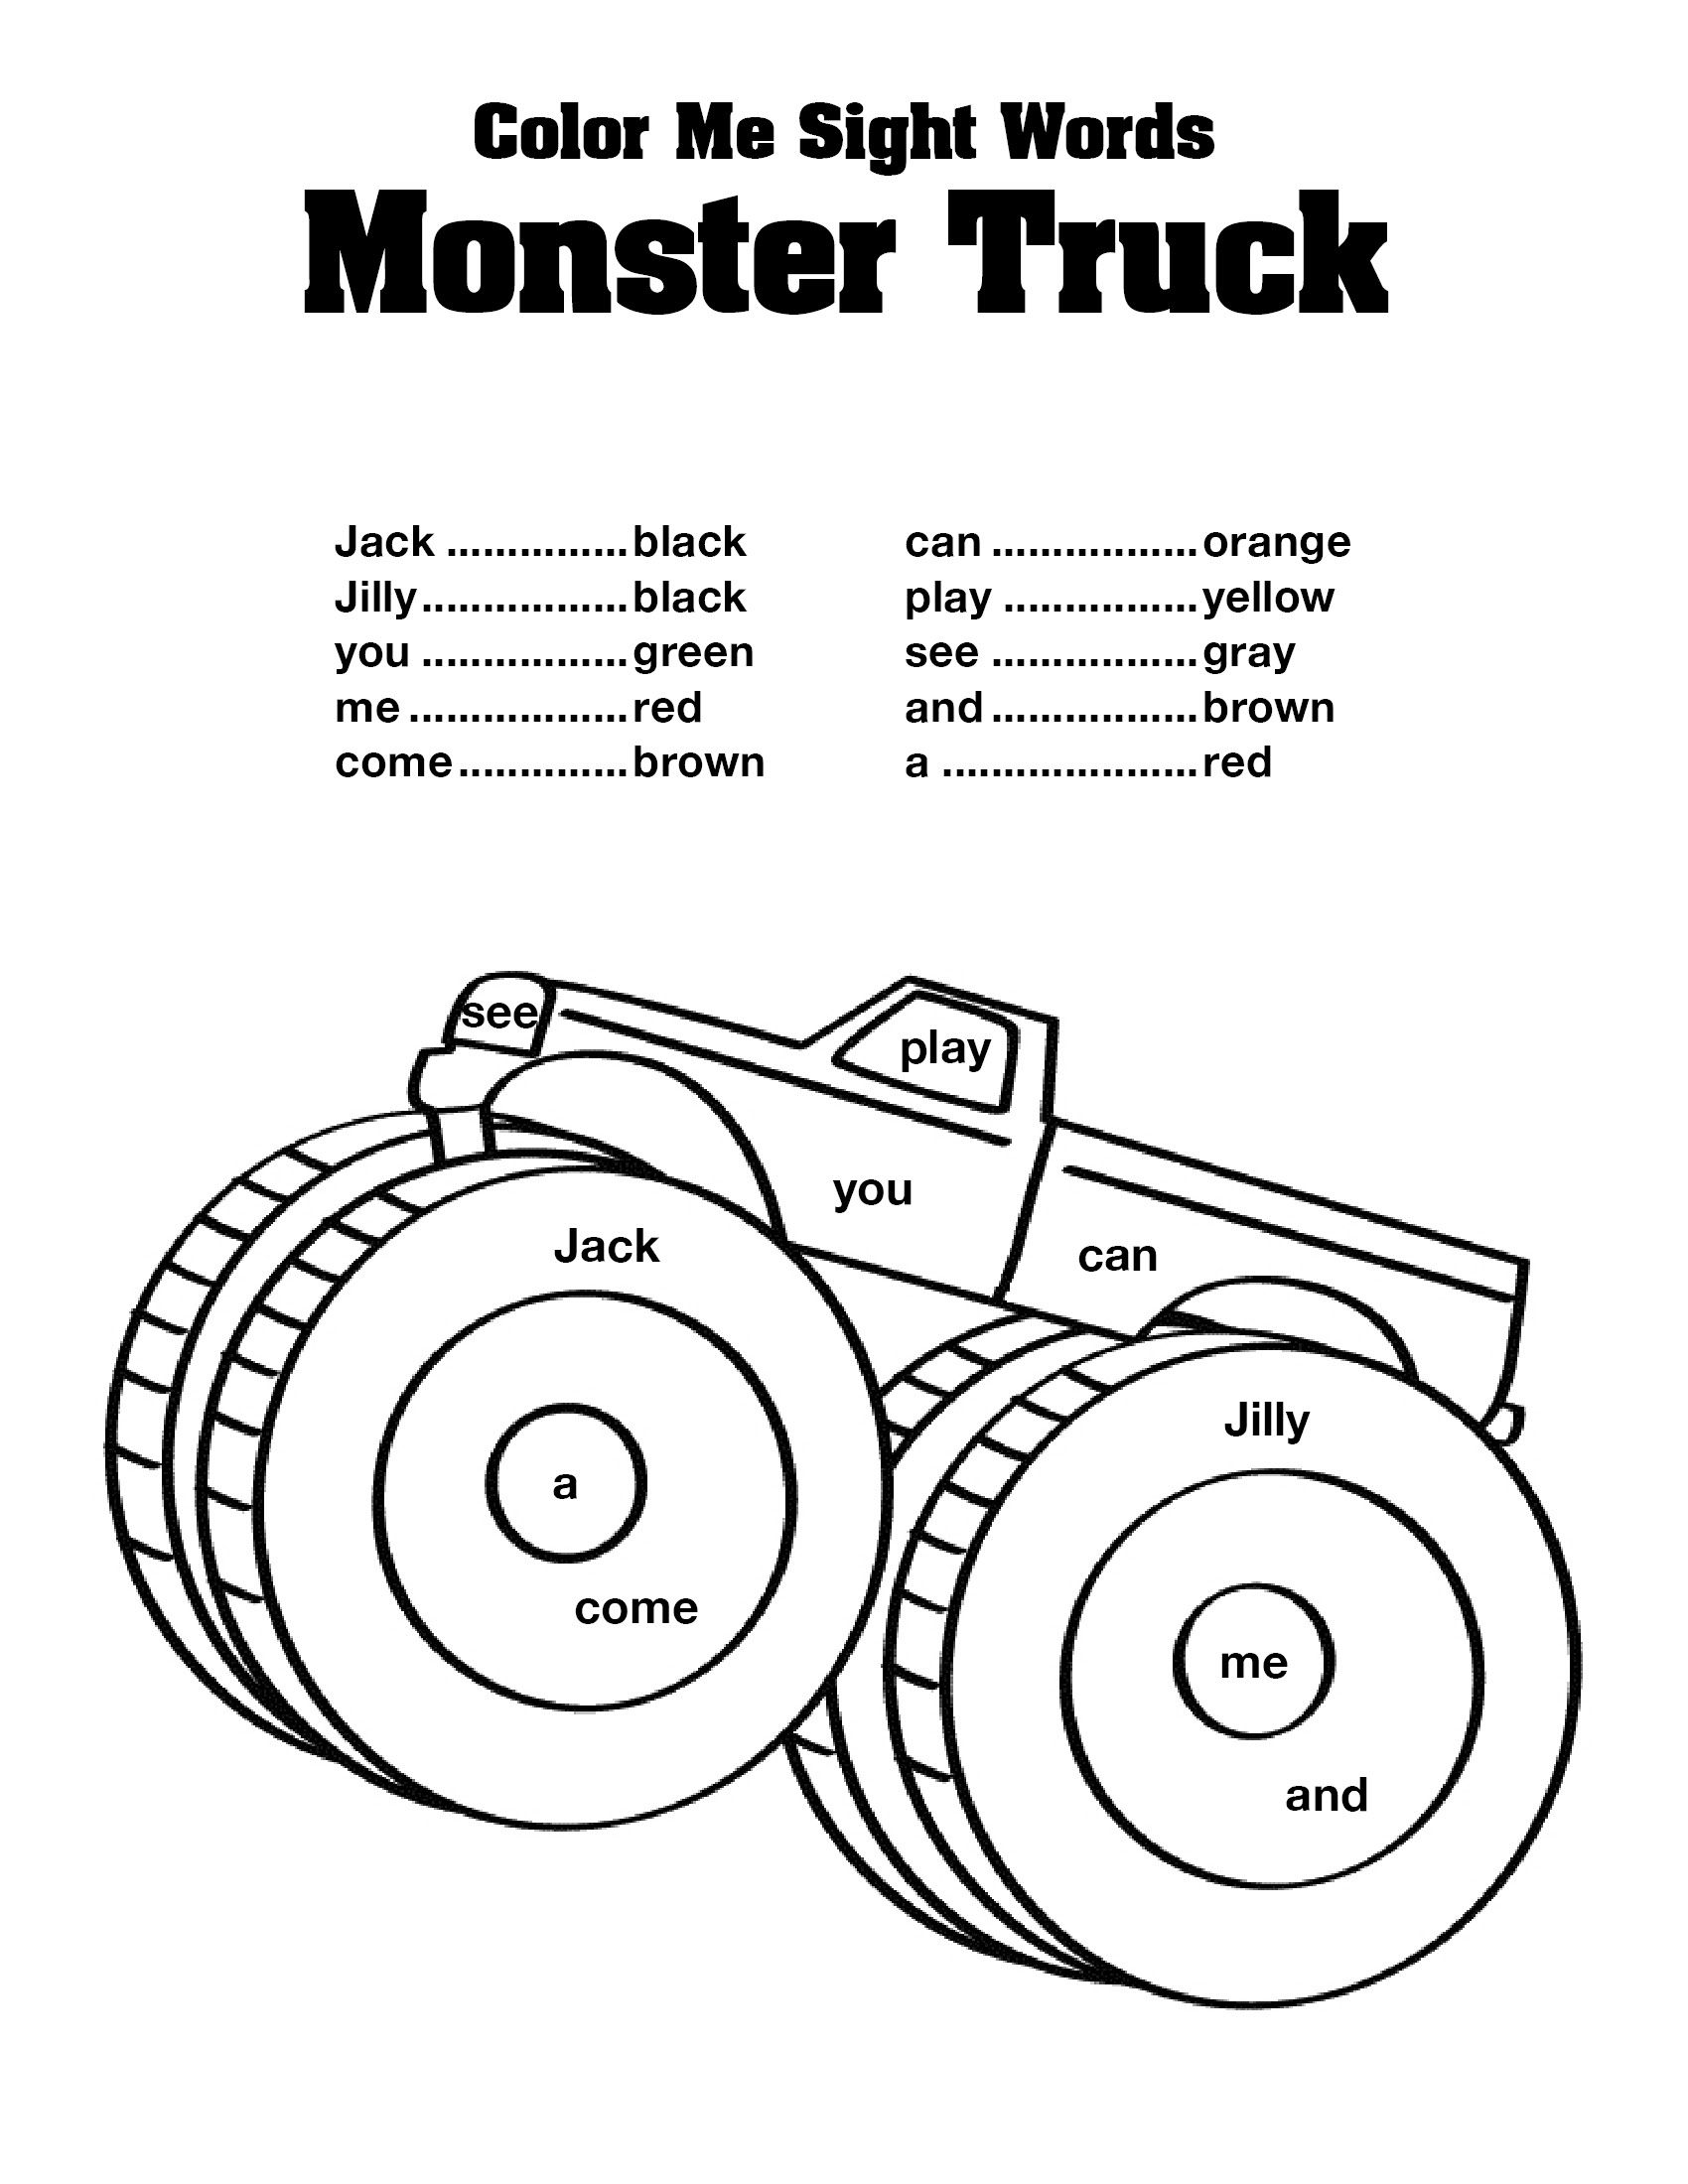 coloring pages sight words - photo#10